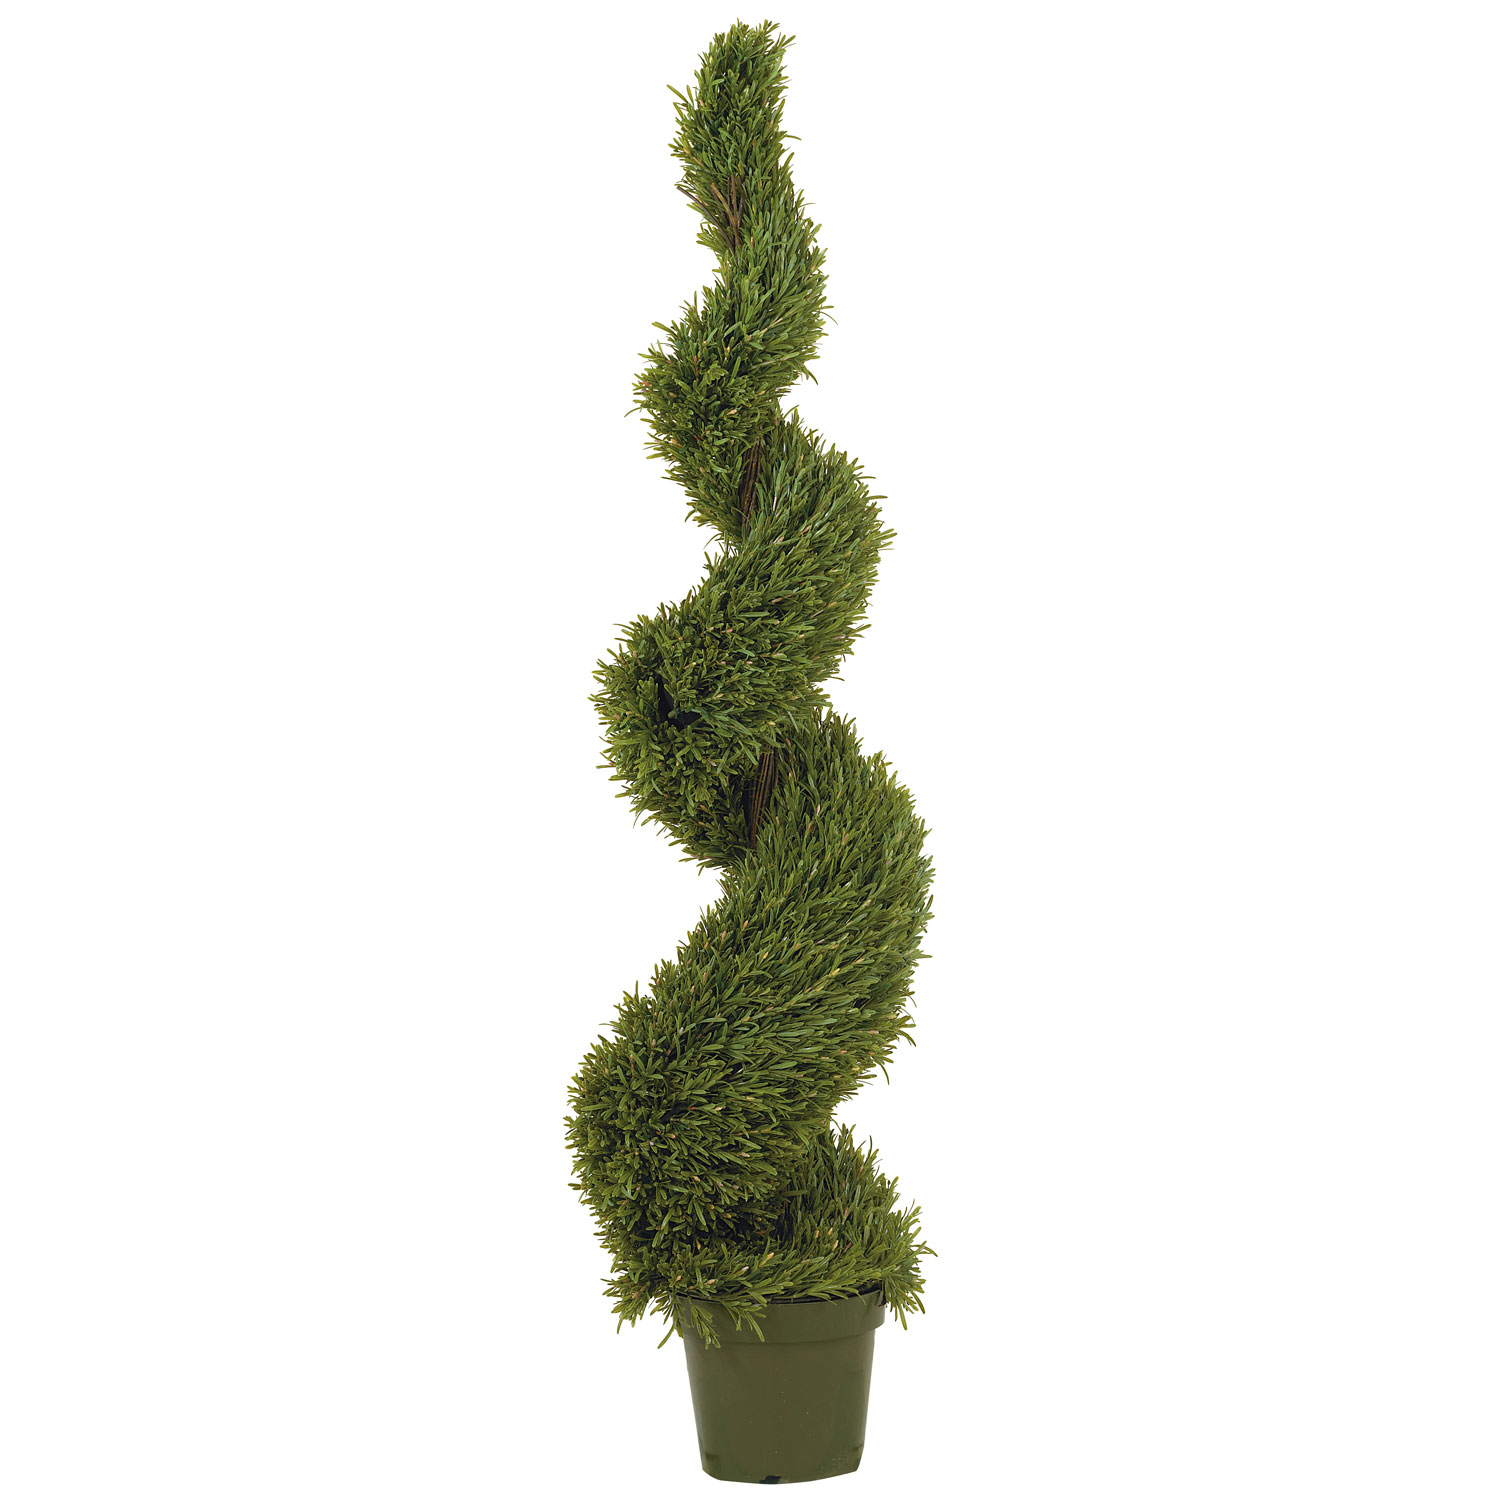 Home 5 foot x 15 inch Rosemary Spiral Topiary: Potted